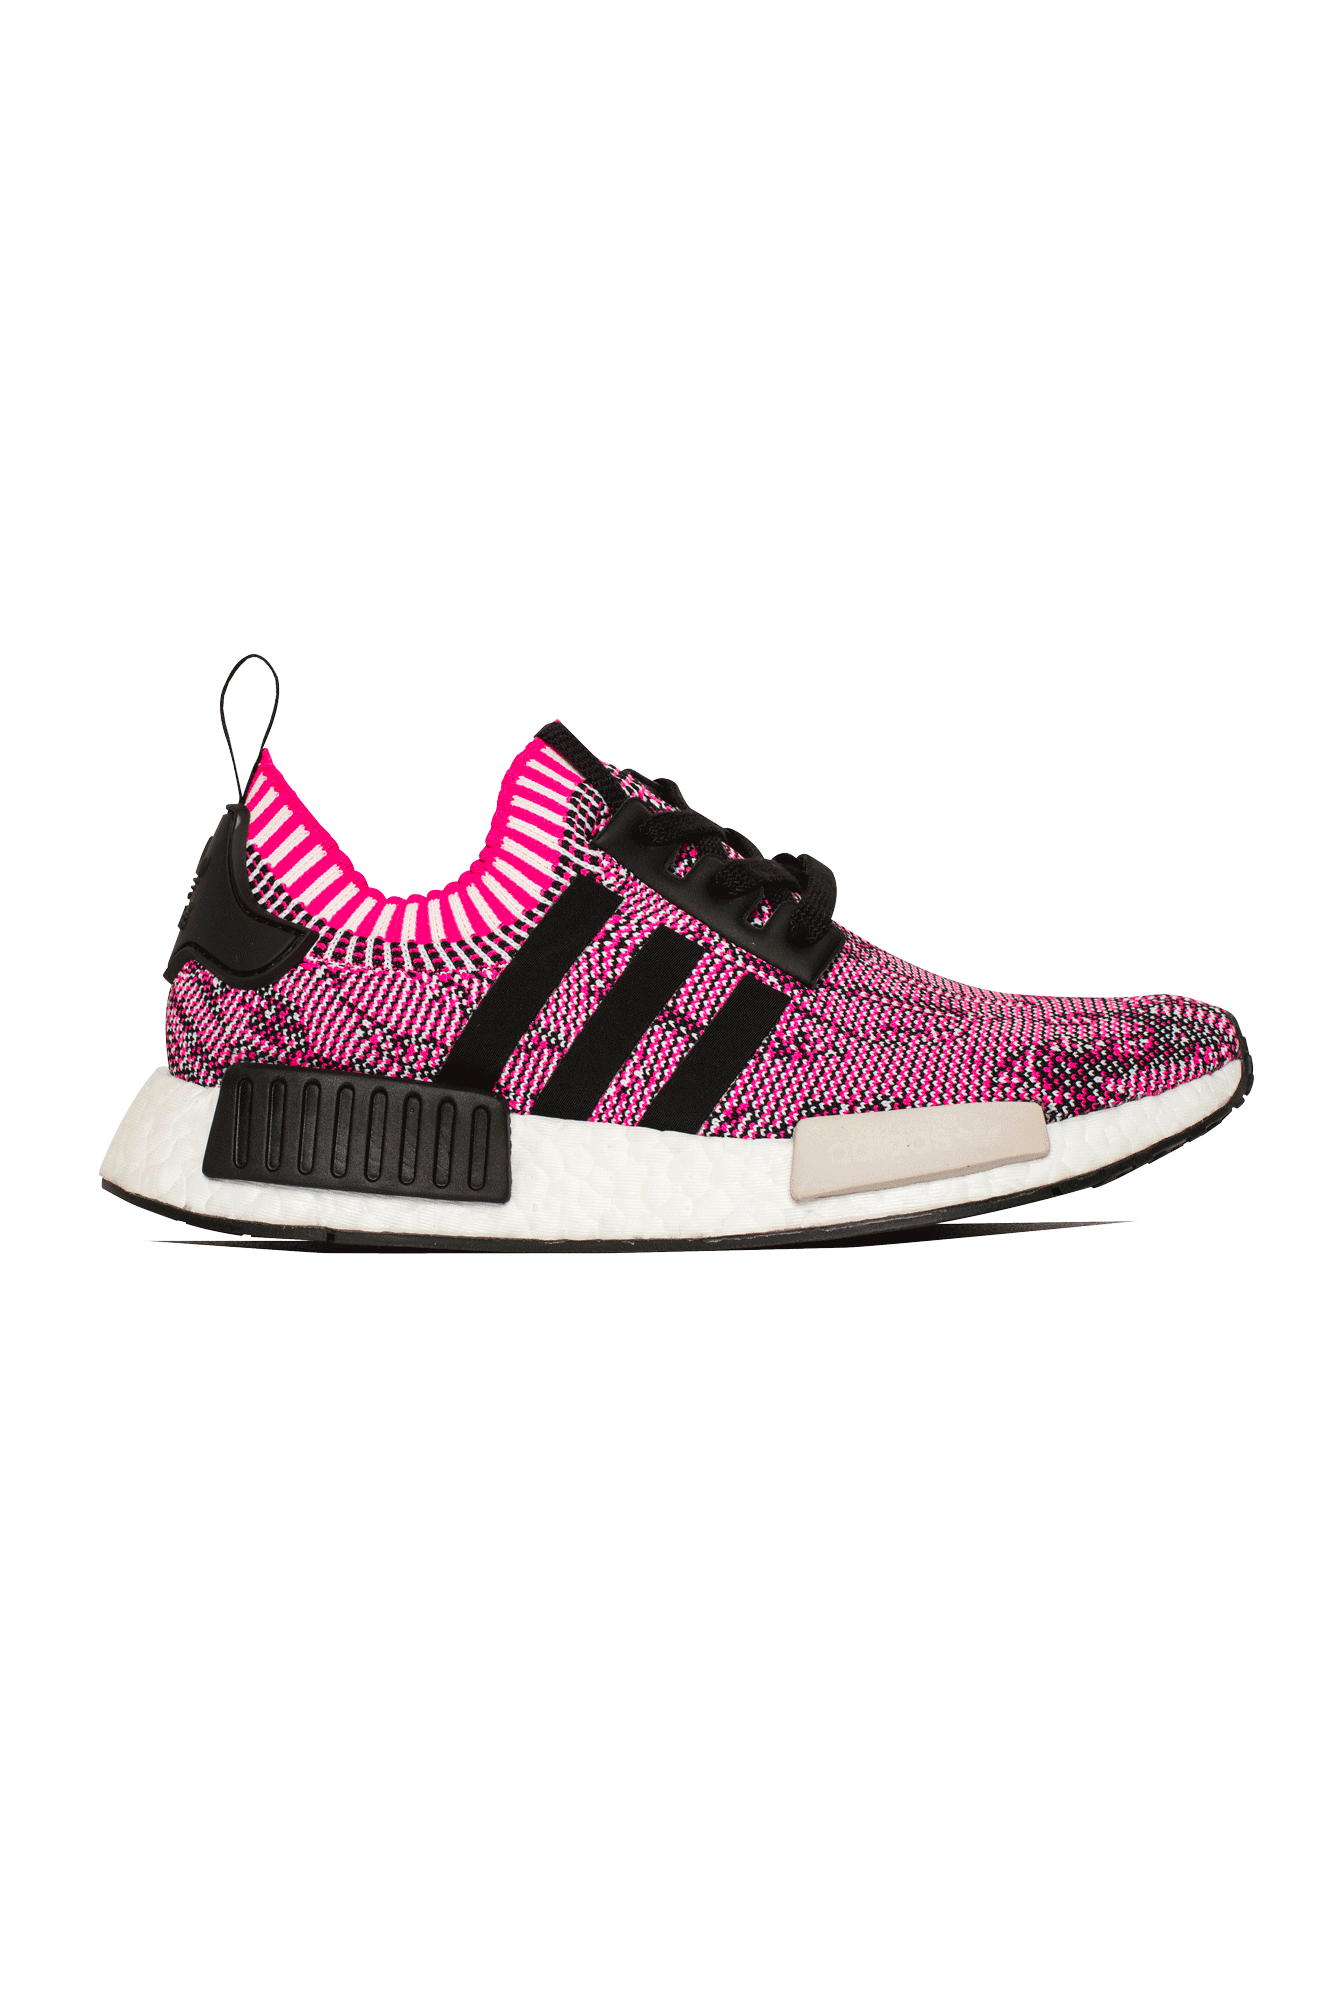 Adidas Originals Sneakers NMD R1 PK W Pink BB2363#000#C0011#7,5 - One Block Down